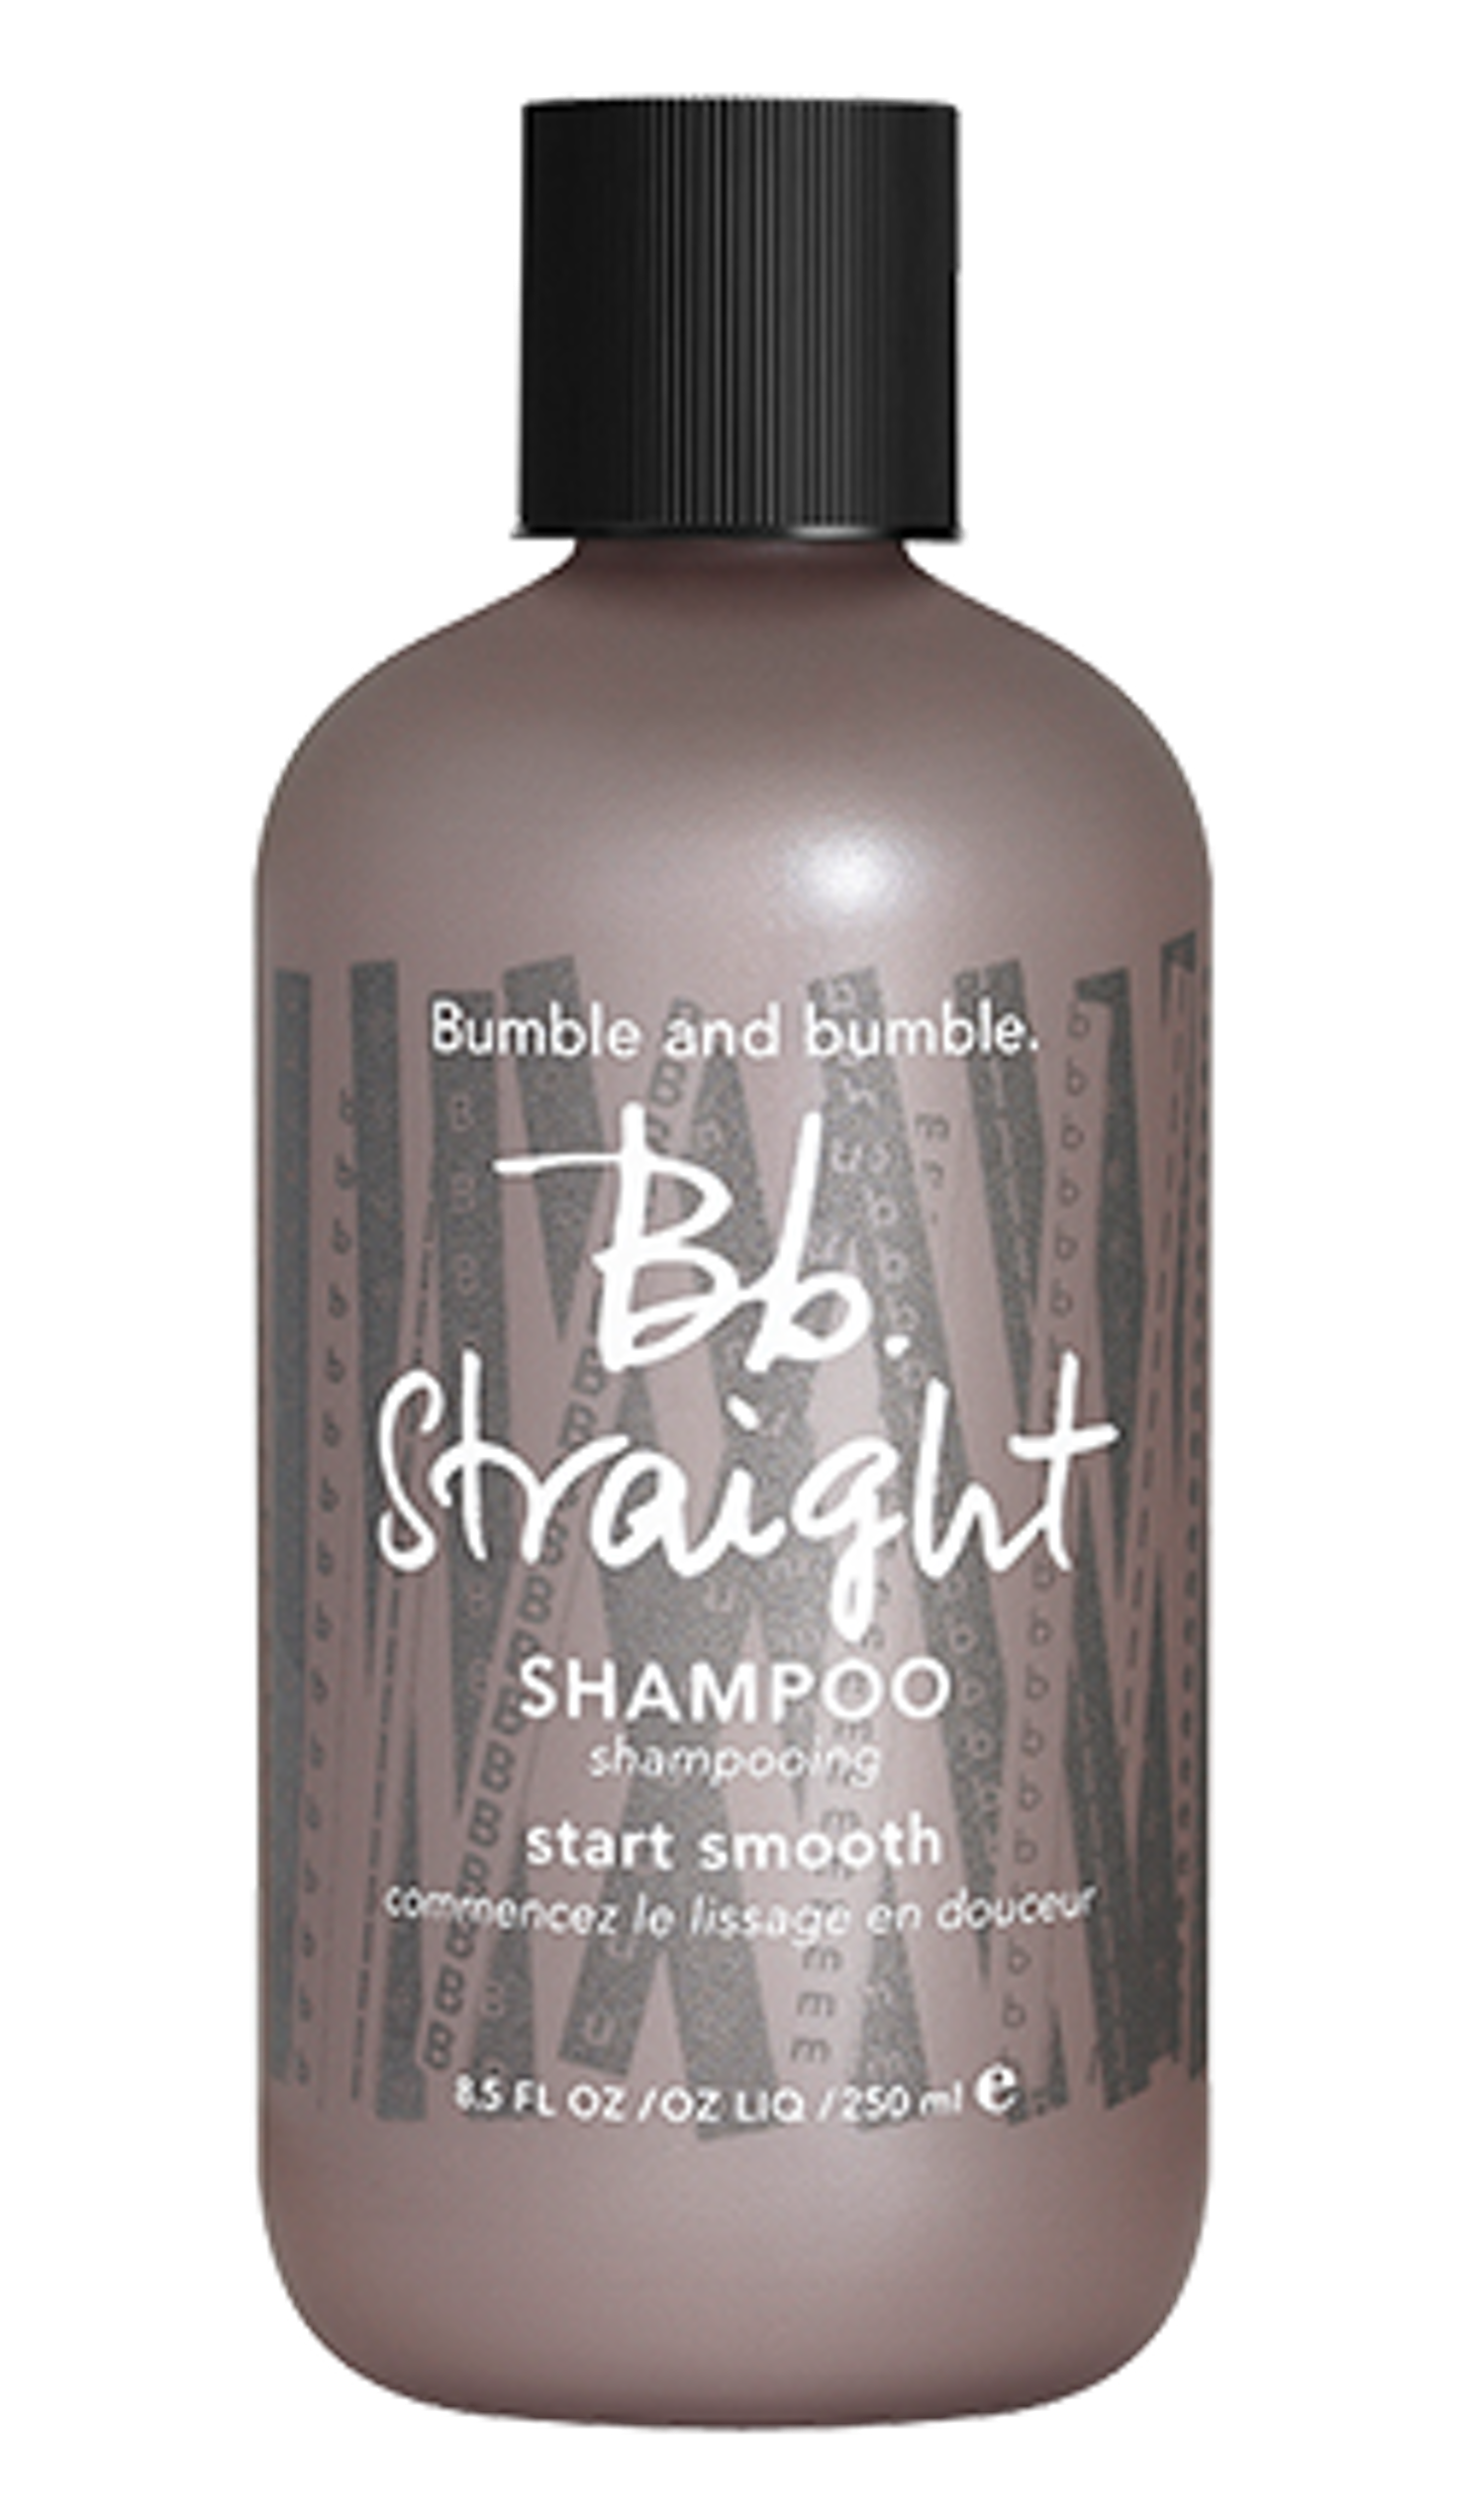 You Love The Straight Hair Look But Have Been Battling Humidity To Keep Your Style Sleek Du Bumble And Bumble Straight Straightening Shampoo Bumble And Bumble